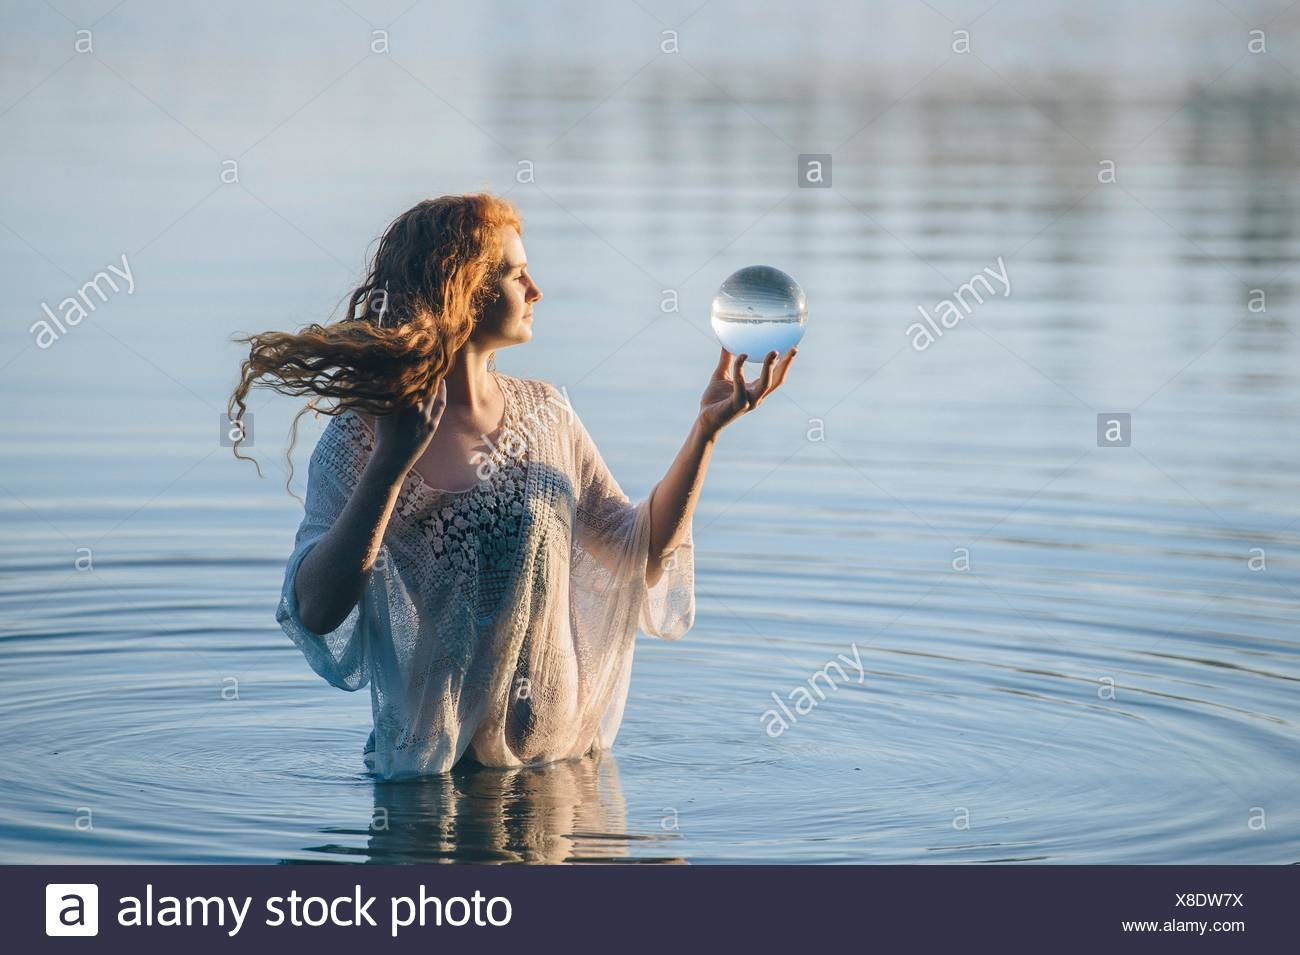 Young woman with long red hair standing in lake gazing at crystal ball - Stock Image